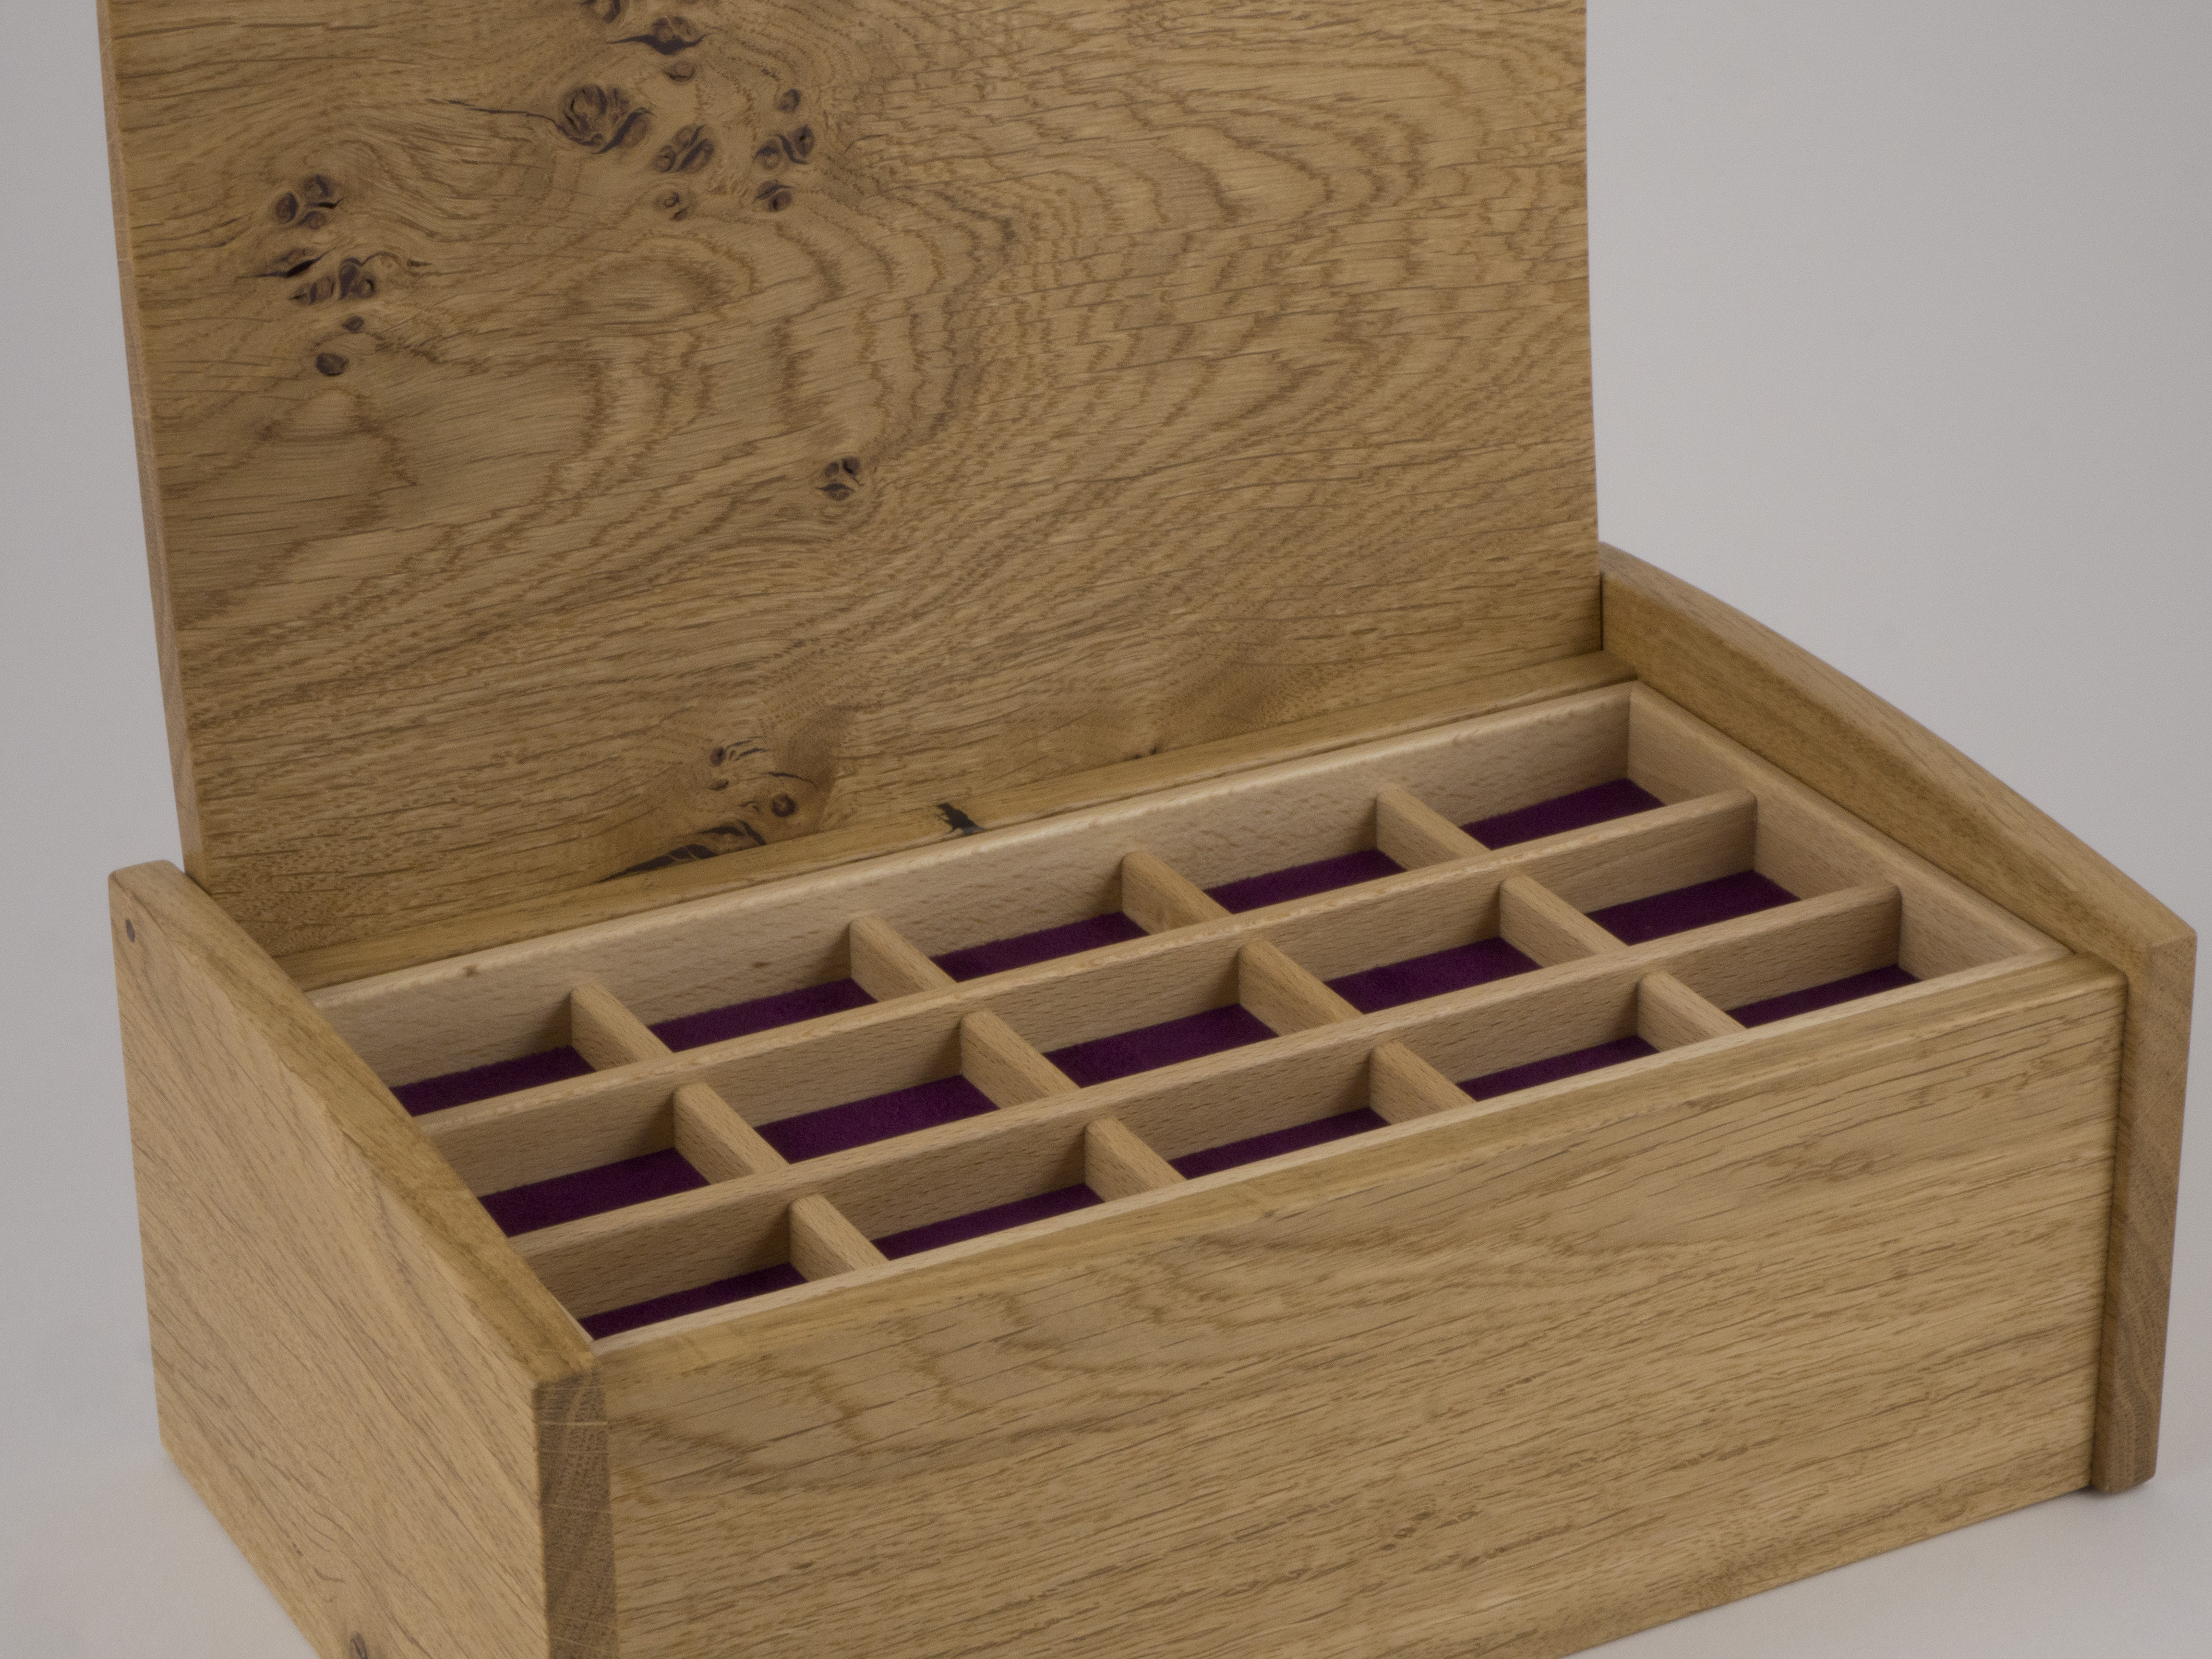 Inside the box are removable trays